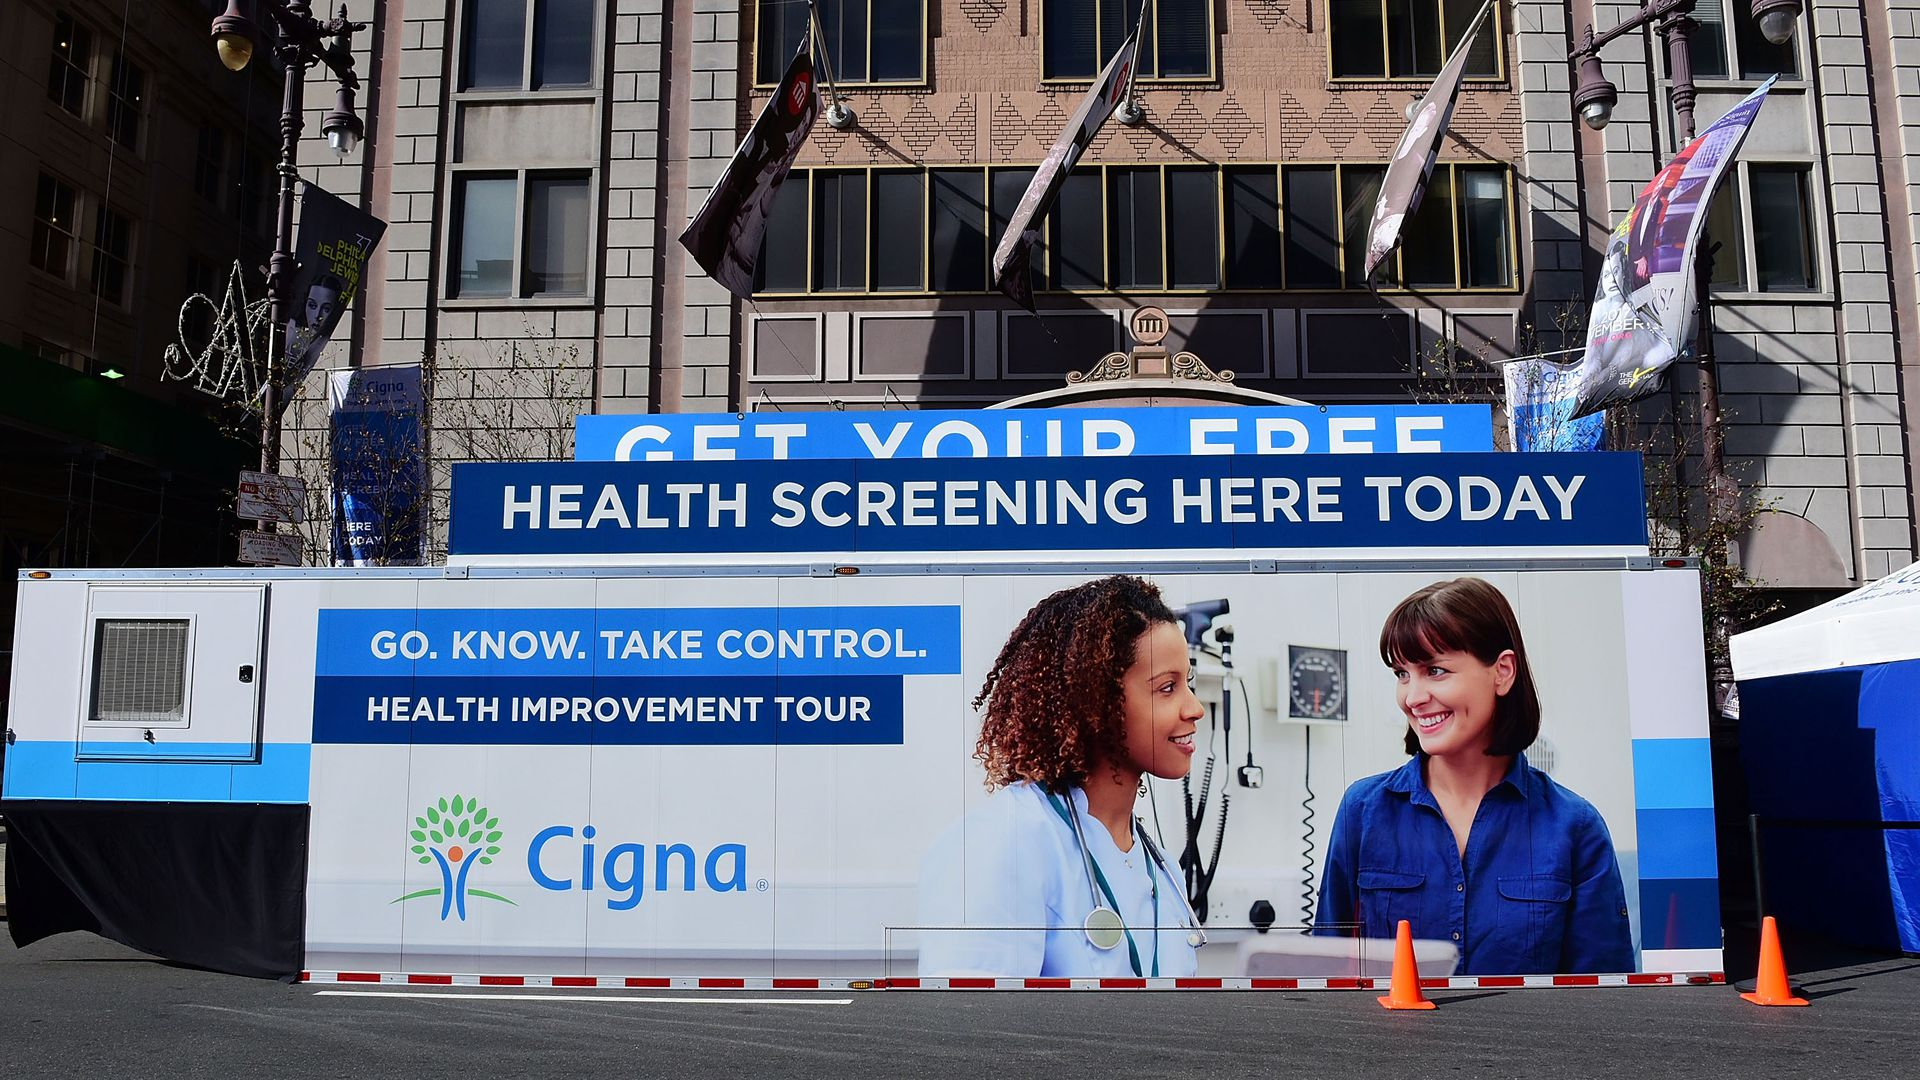 A mobile van sponsored by Cigna promotes free health screenings.